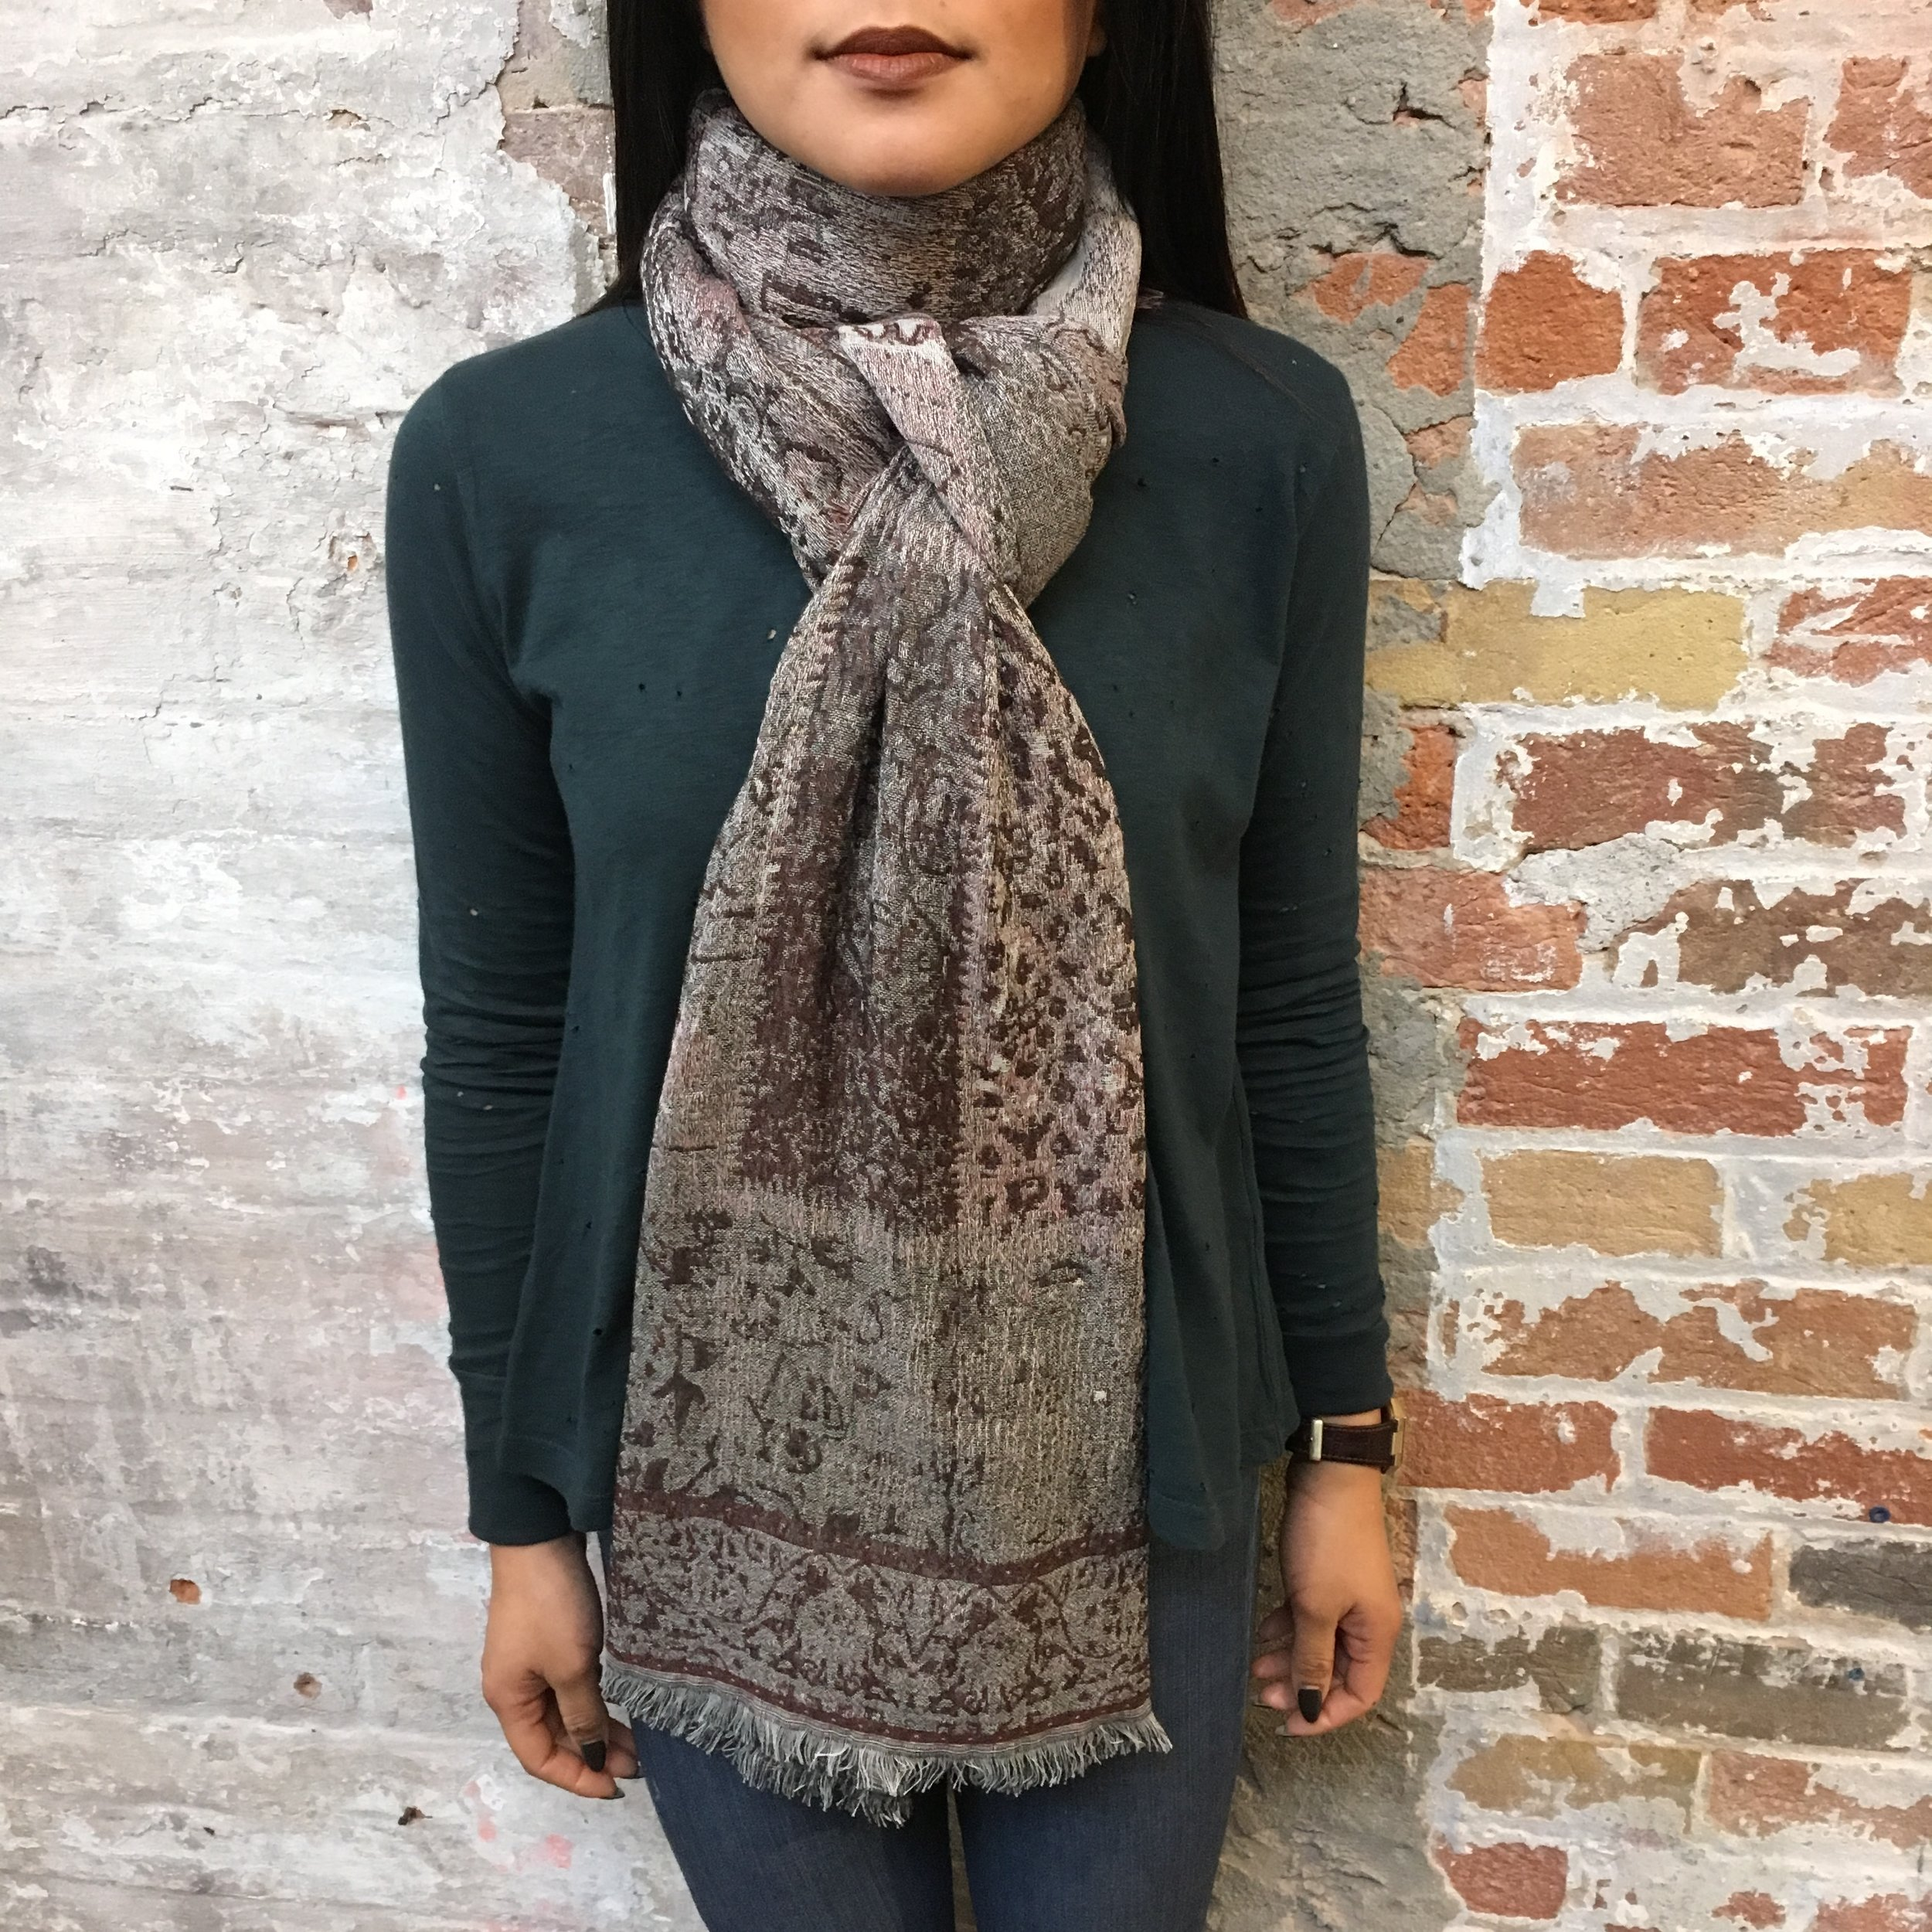 Another version of the one above with a less intricate knot, follow the above steps but only pull one end through the loop, leaving a more relaxed feel to the scarf.